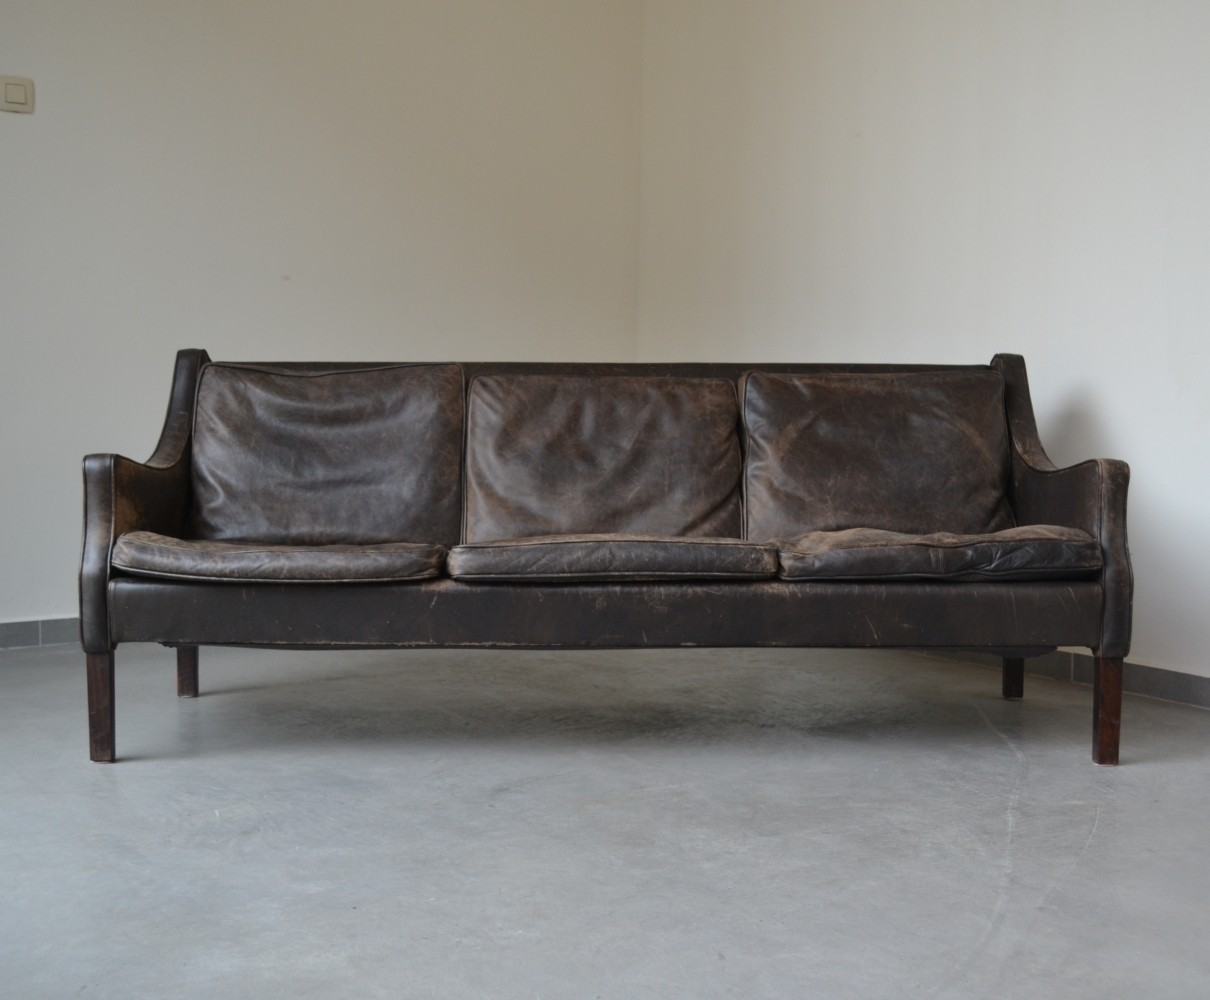 Brown leather three-seater sofa from Denmark, 1960